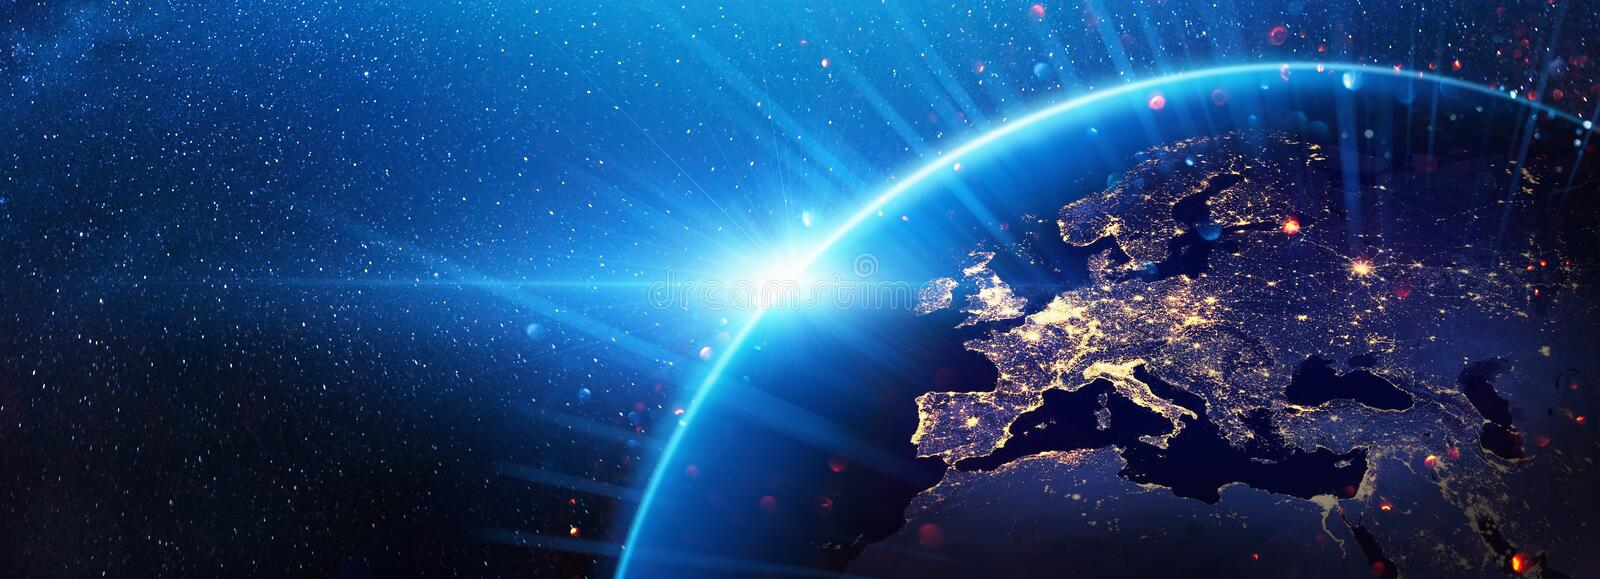 Planet Earth Europe from the Space at Night royalty free stock photography